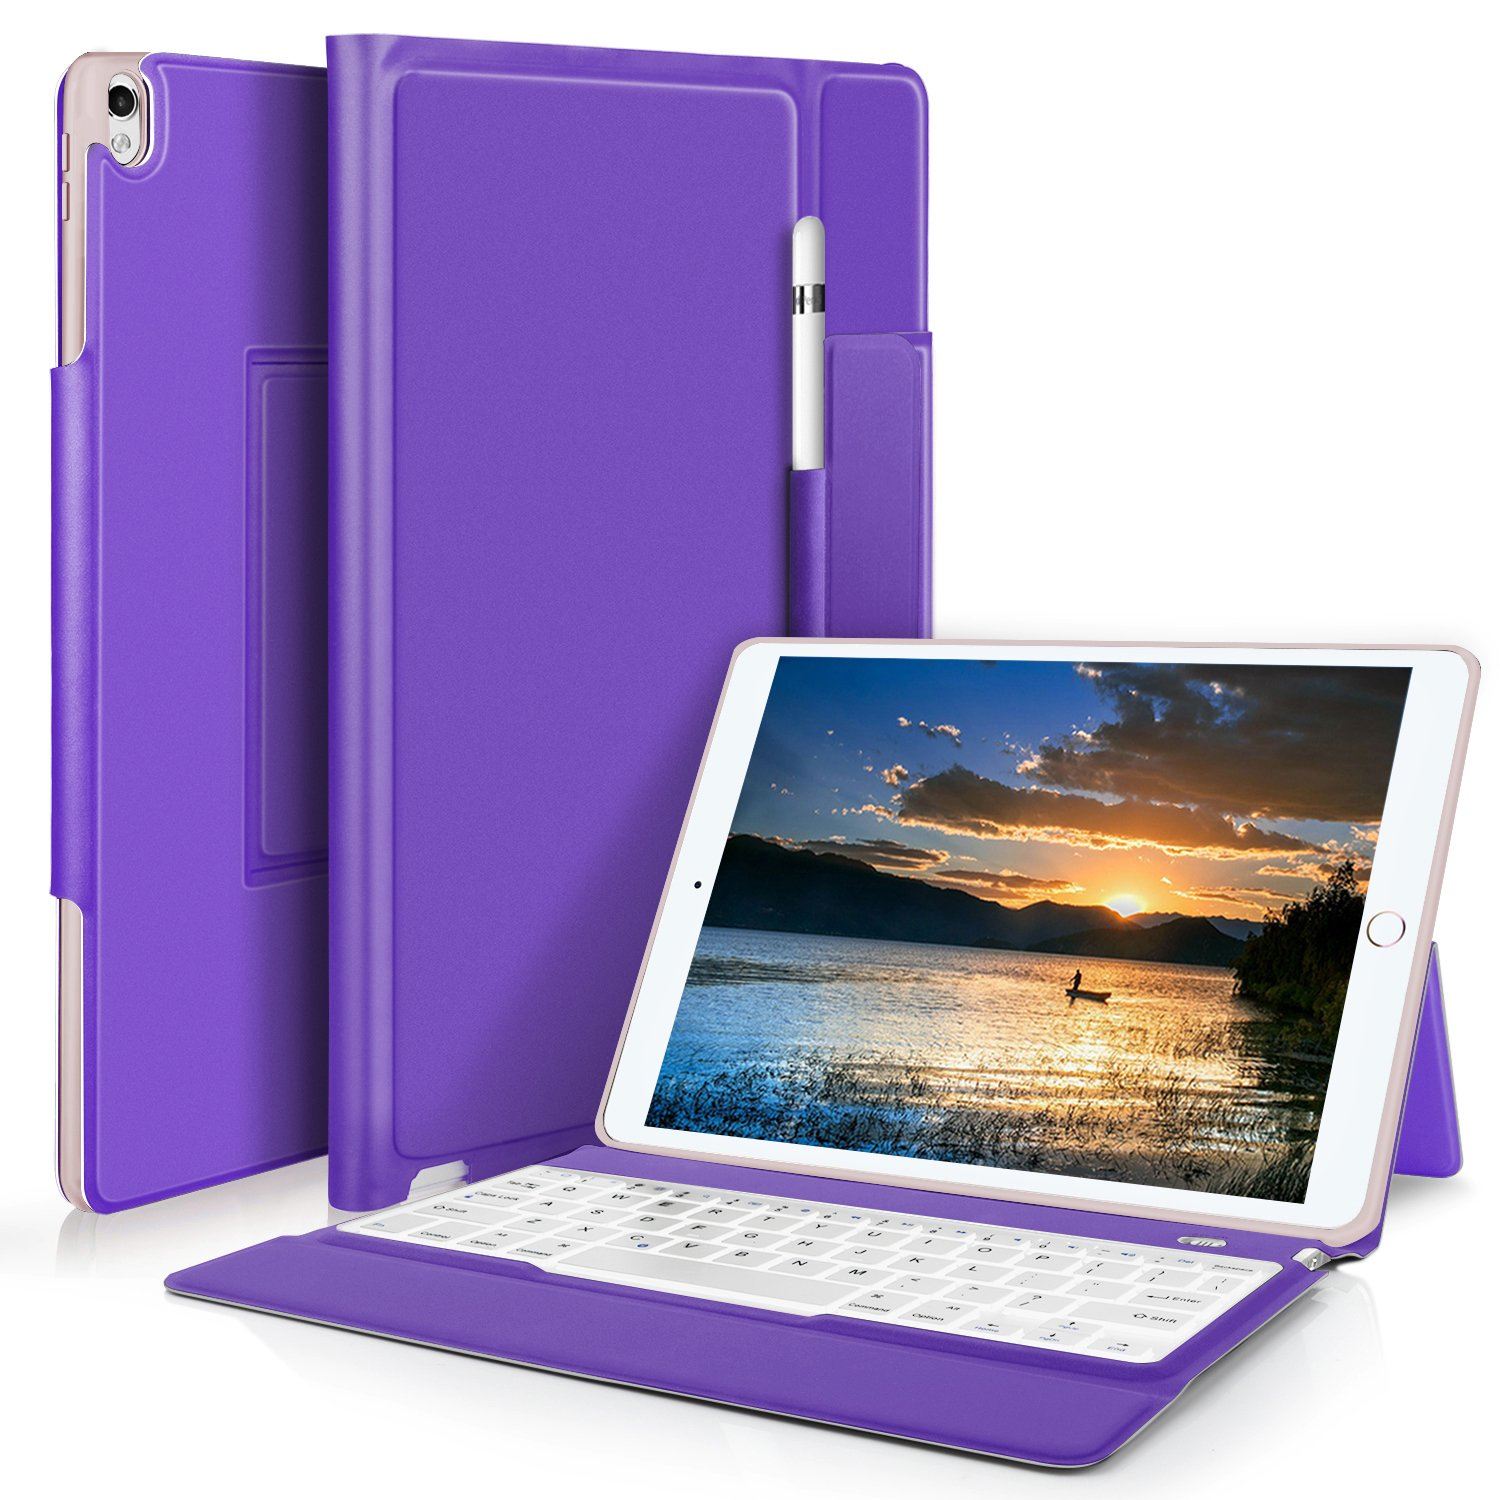 IVSO Apple ipad Pro 10.5 Case Keyboard Ultra-Thin One-Piece Wireless Keyboard Stand Case/Cover + Pencil Holder Apple ipad Pro 10.5 Tablet(Purple)